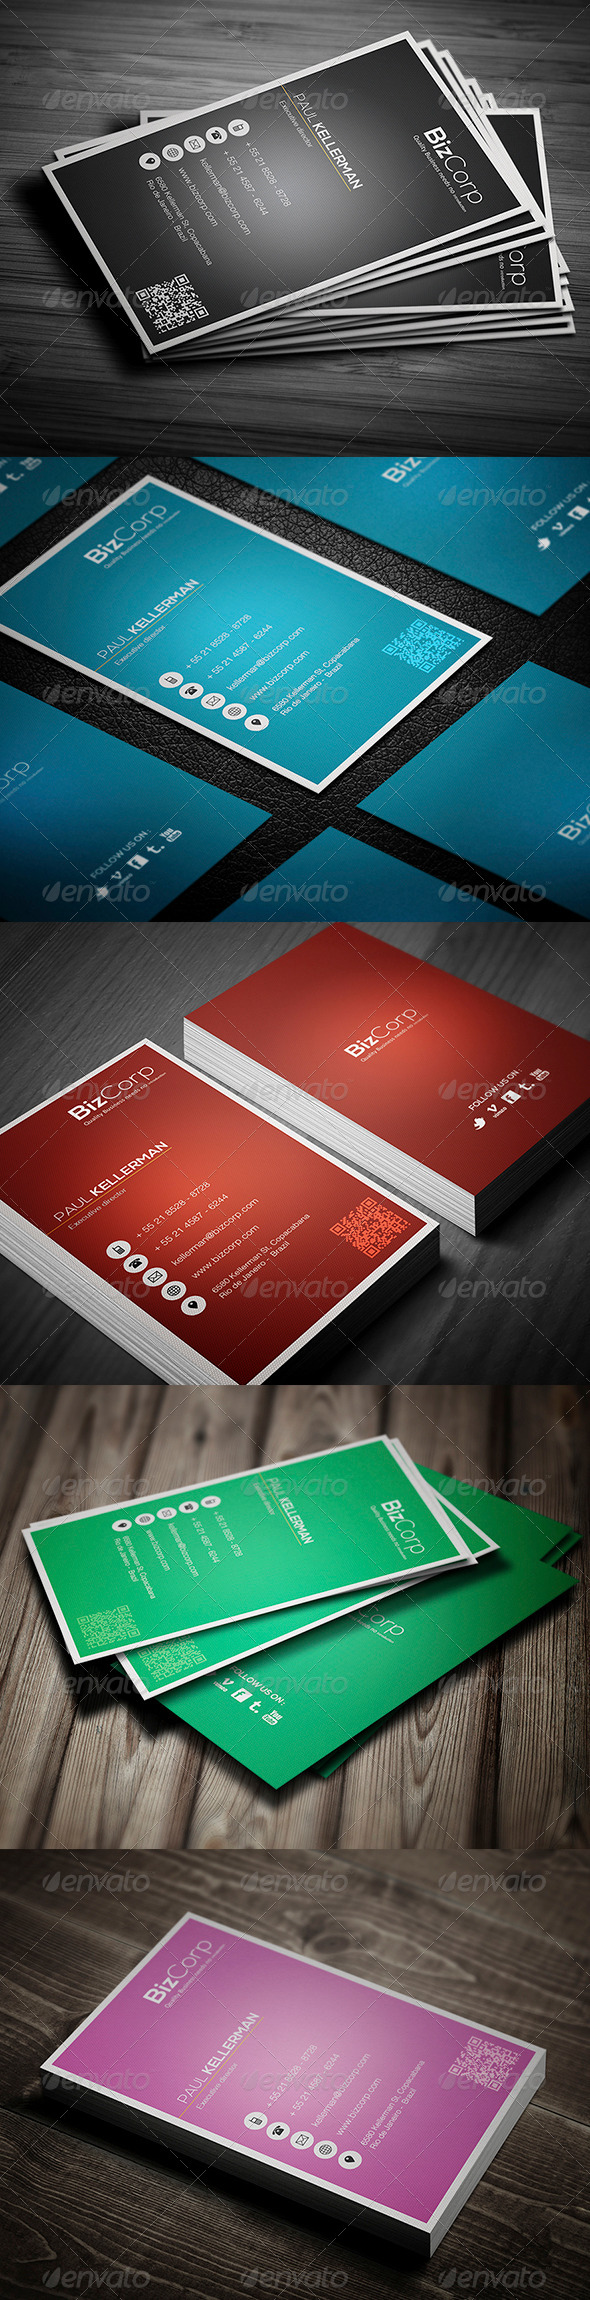 GraphicRiver Ultimate Business Card 4148891